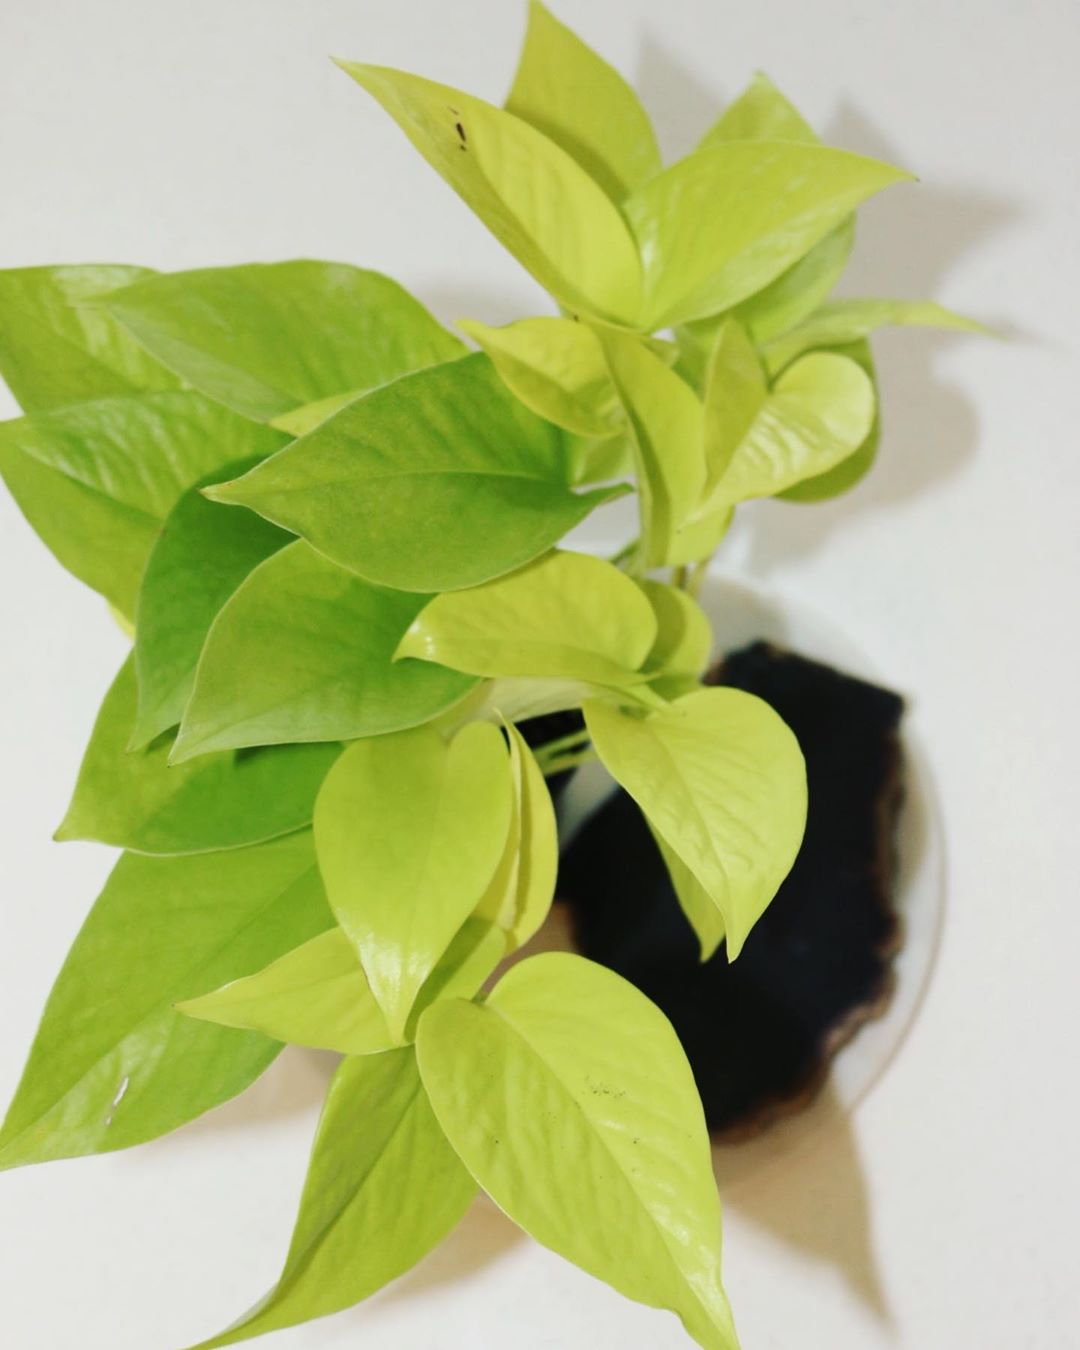 @lady.botanical A neon pothos plant example.